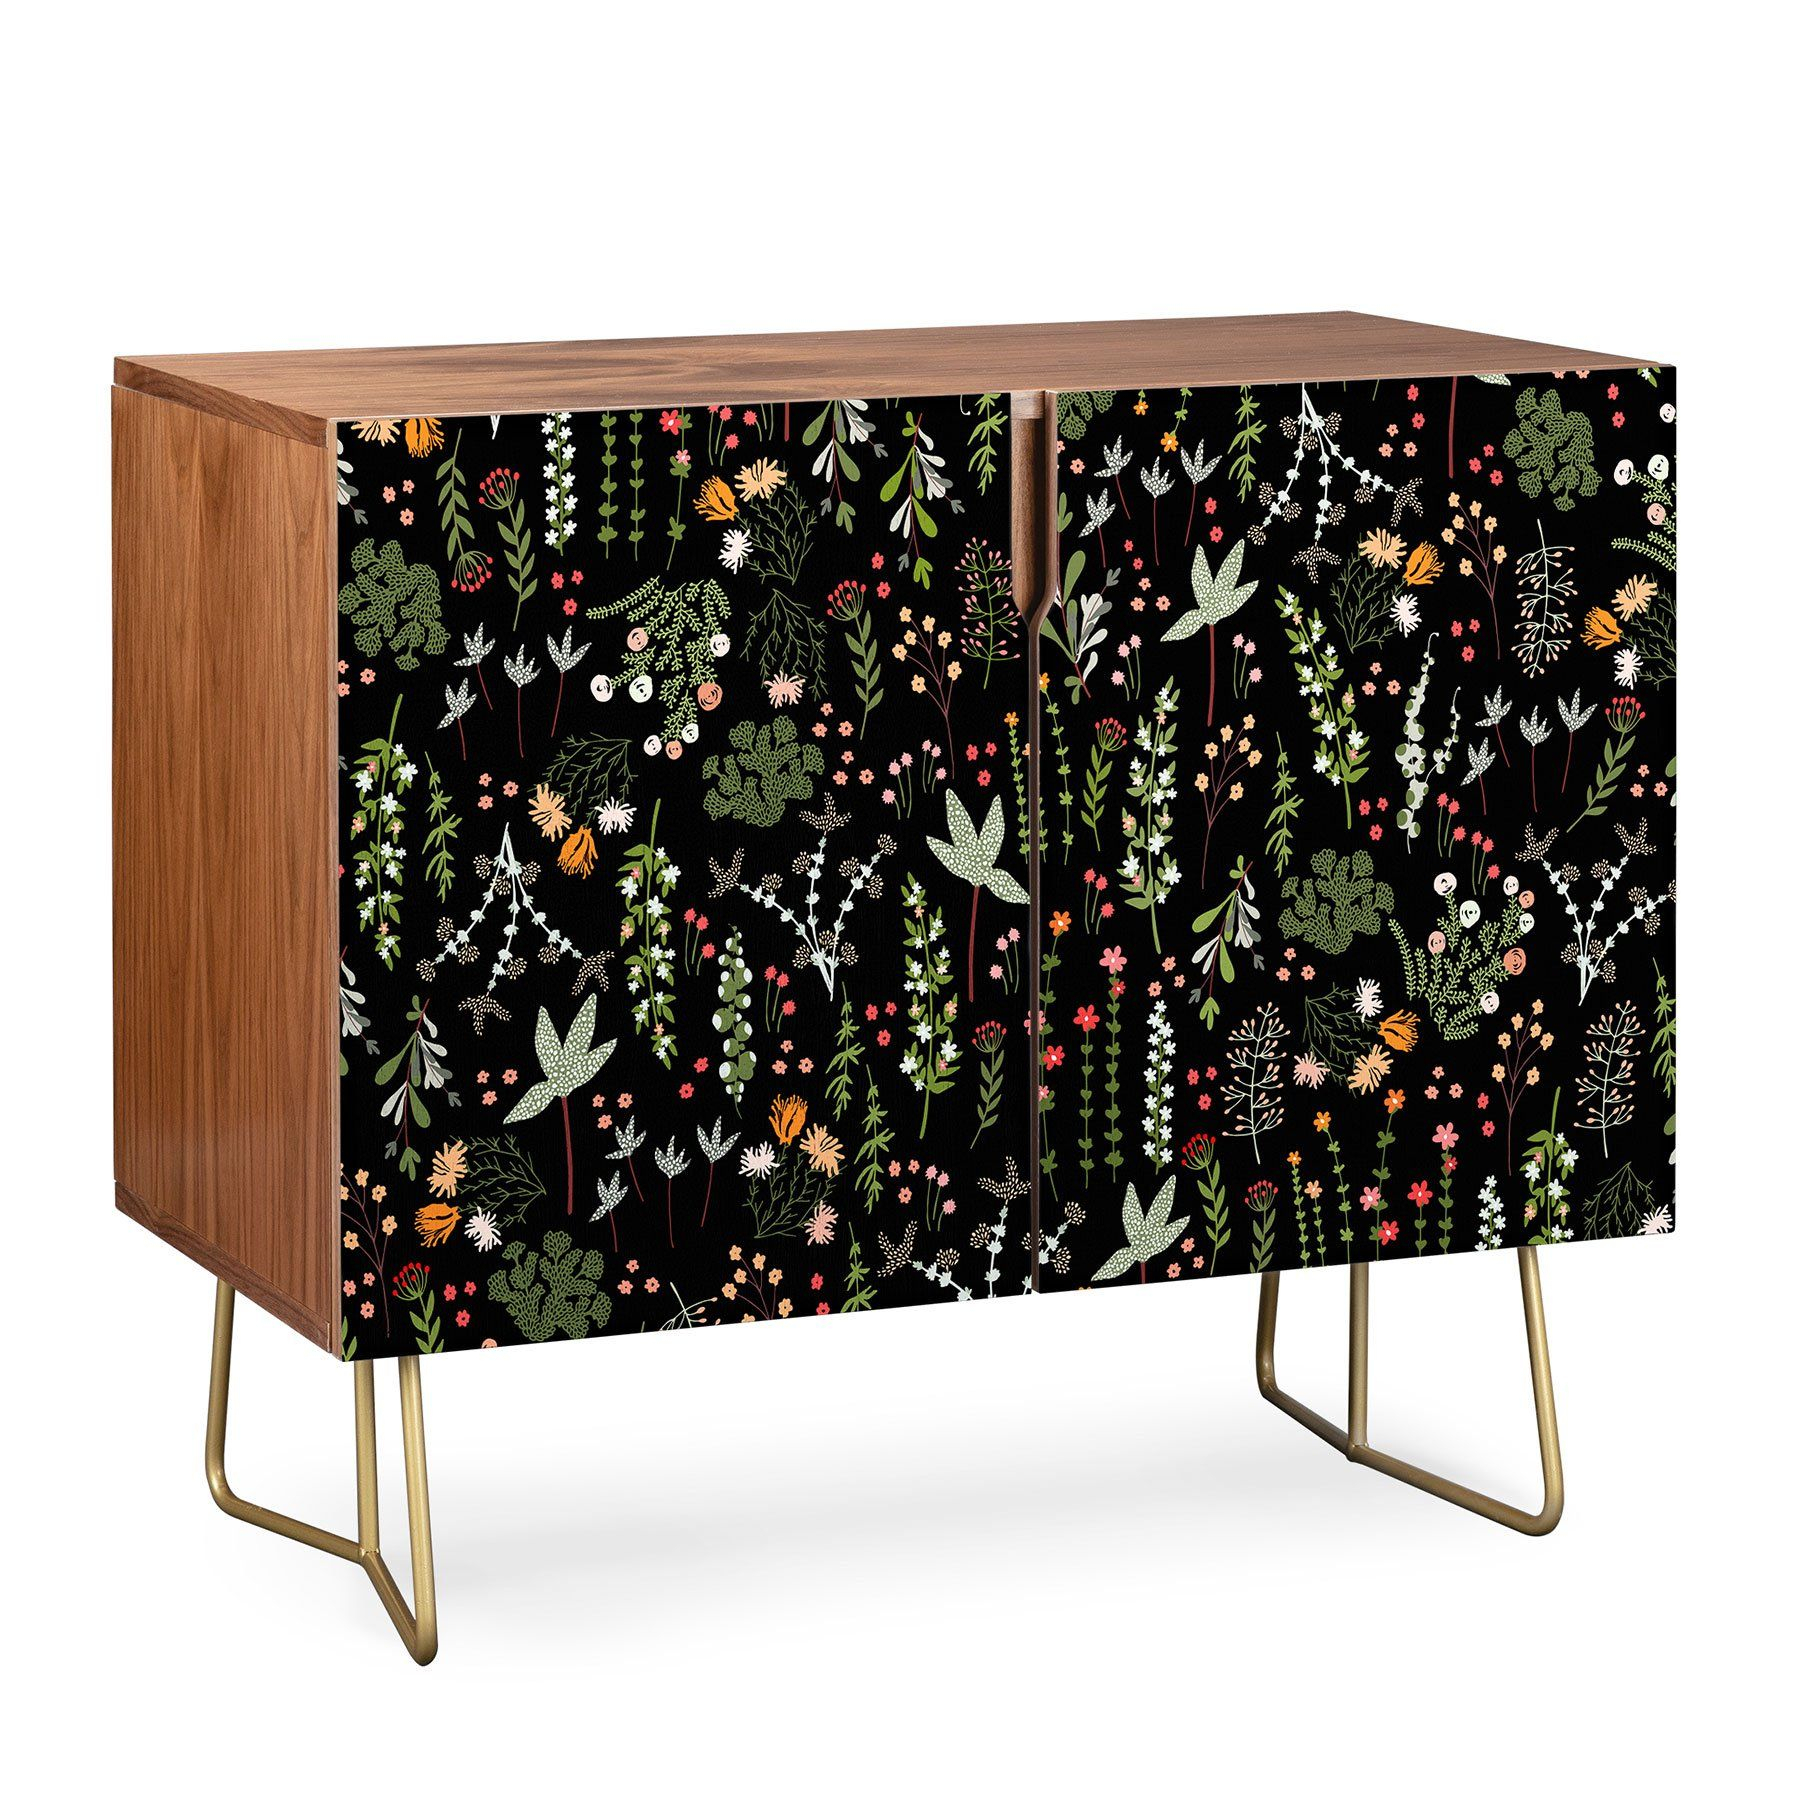 Iveta Abolina Floral Goodness Ii Credenza In 2019 | Interior Intended For Emmaline Sideboards (View 16 of 30)